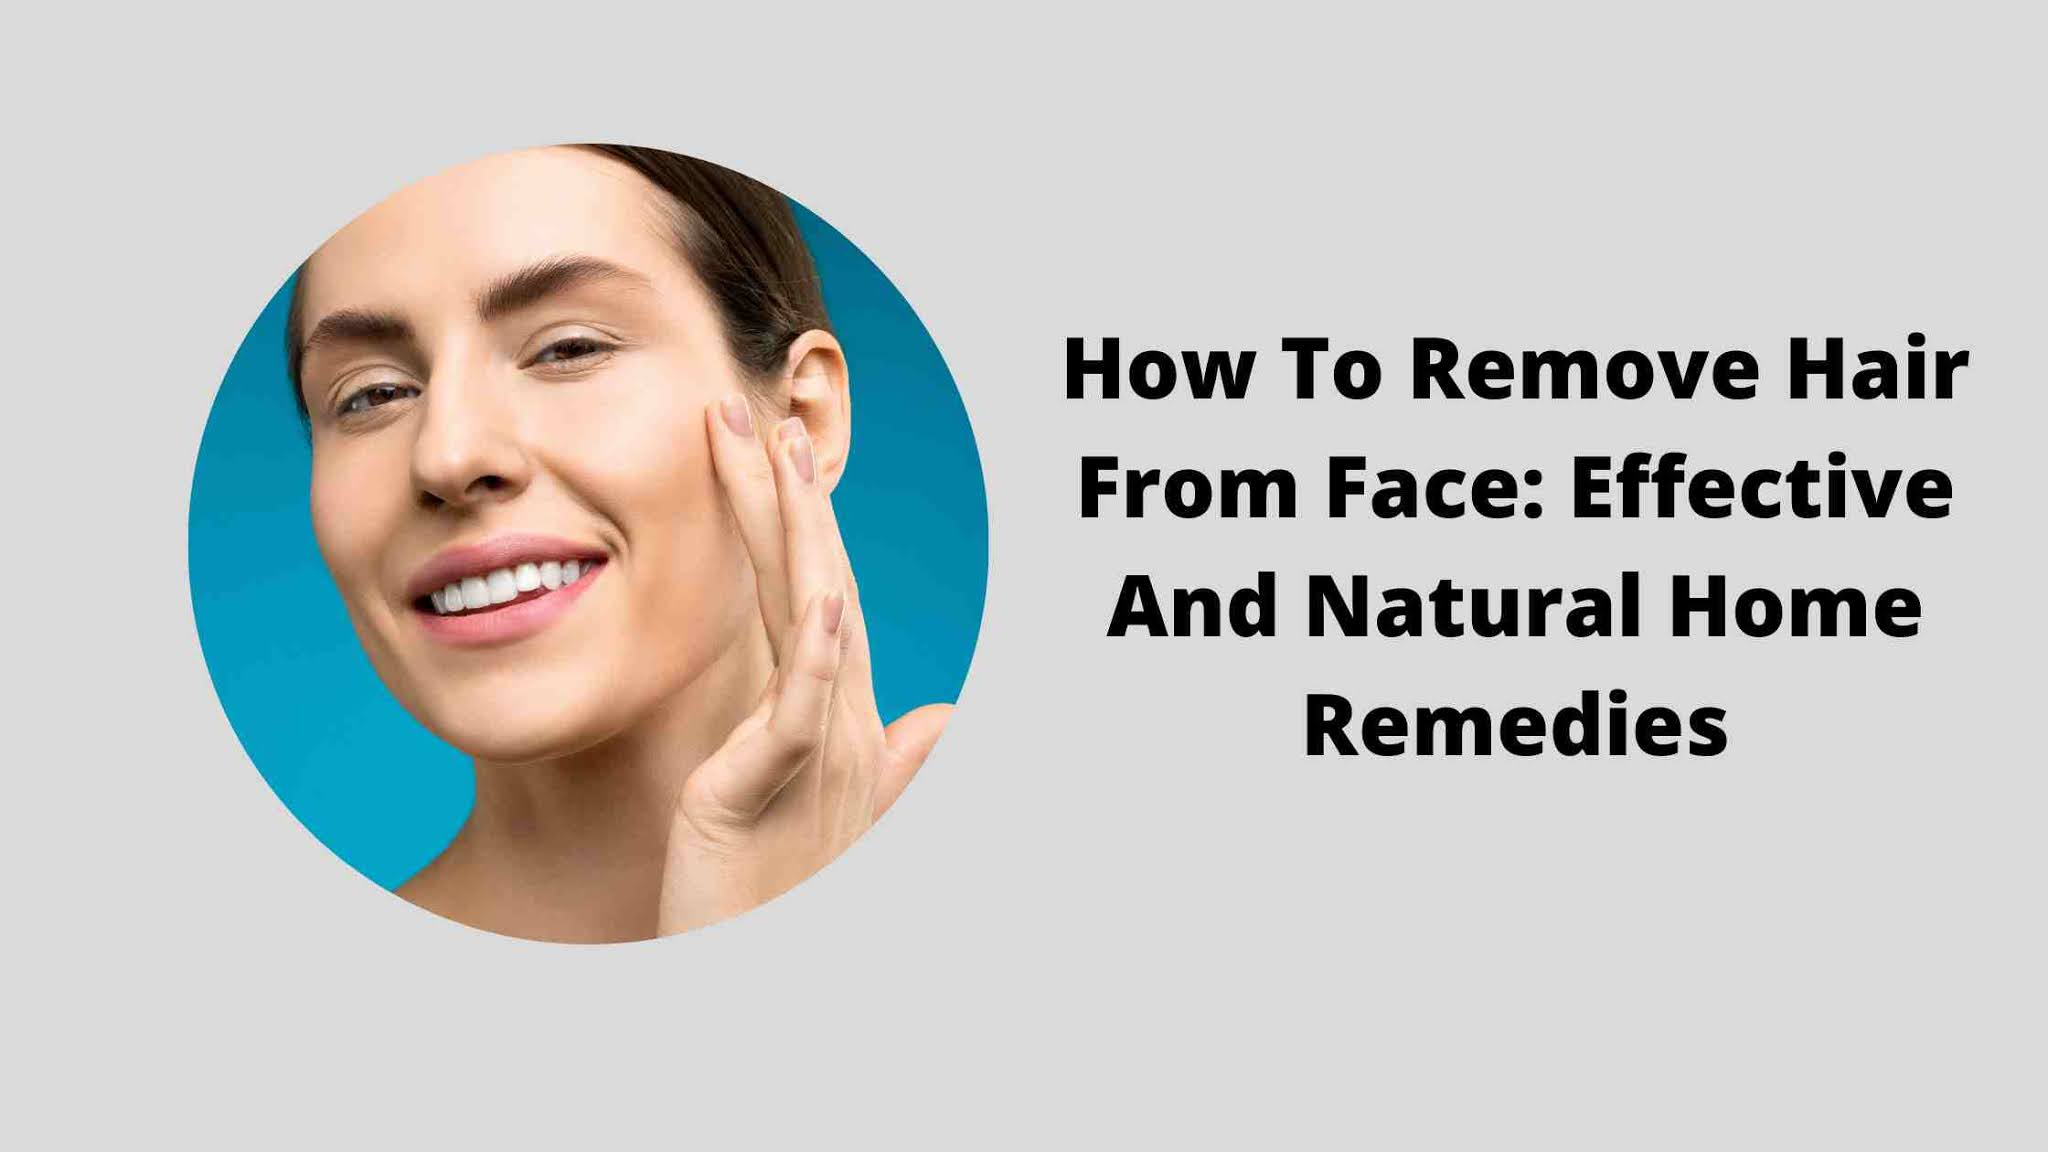 How To Remove Hair From Face: Effective And Natural Home Remedies